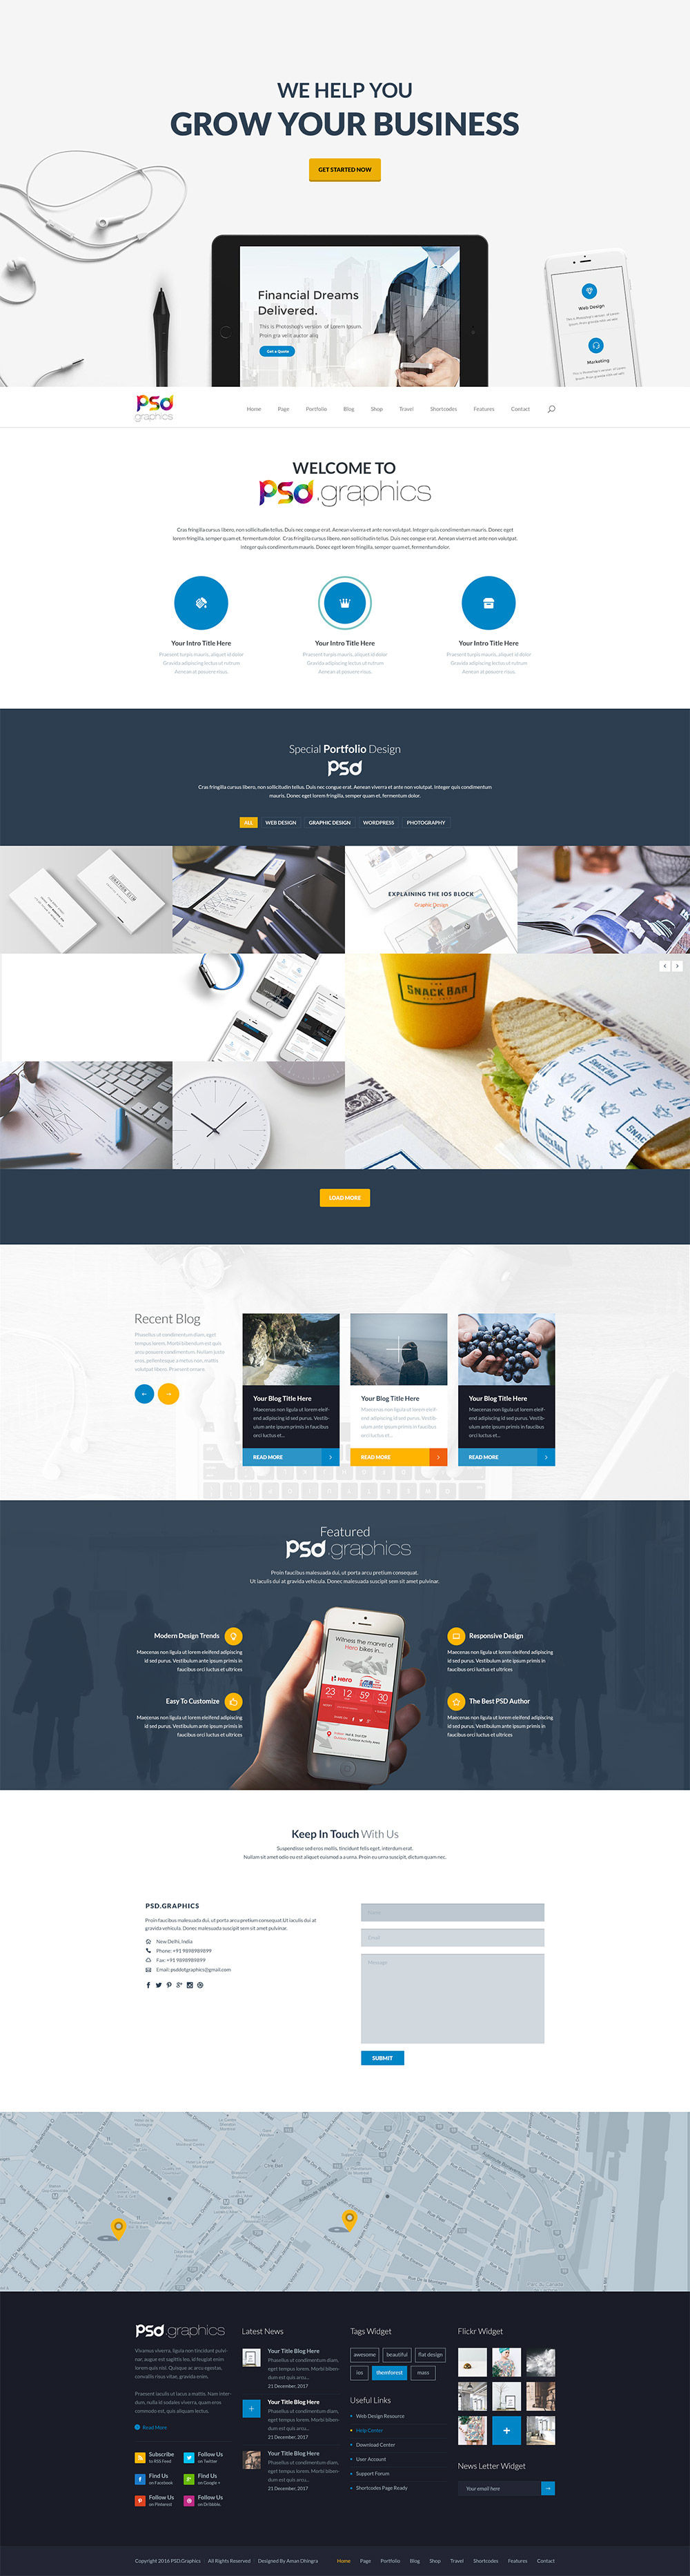 Freebie professional business website template psd on behance download professional business website template free psd here is a free exclusive psd of a creative website design that designers and small agencies who wajeb Choice Image